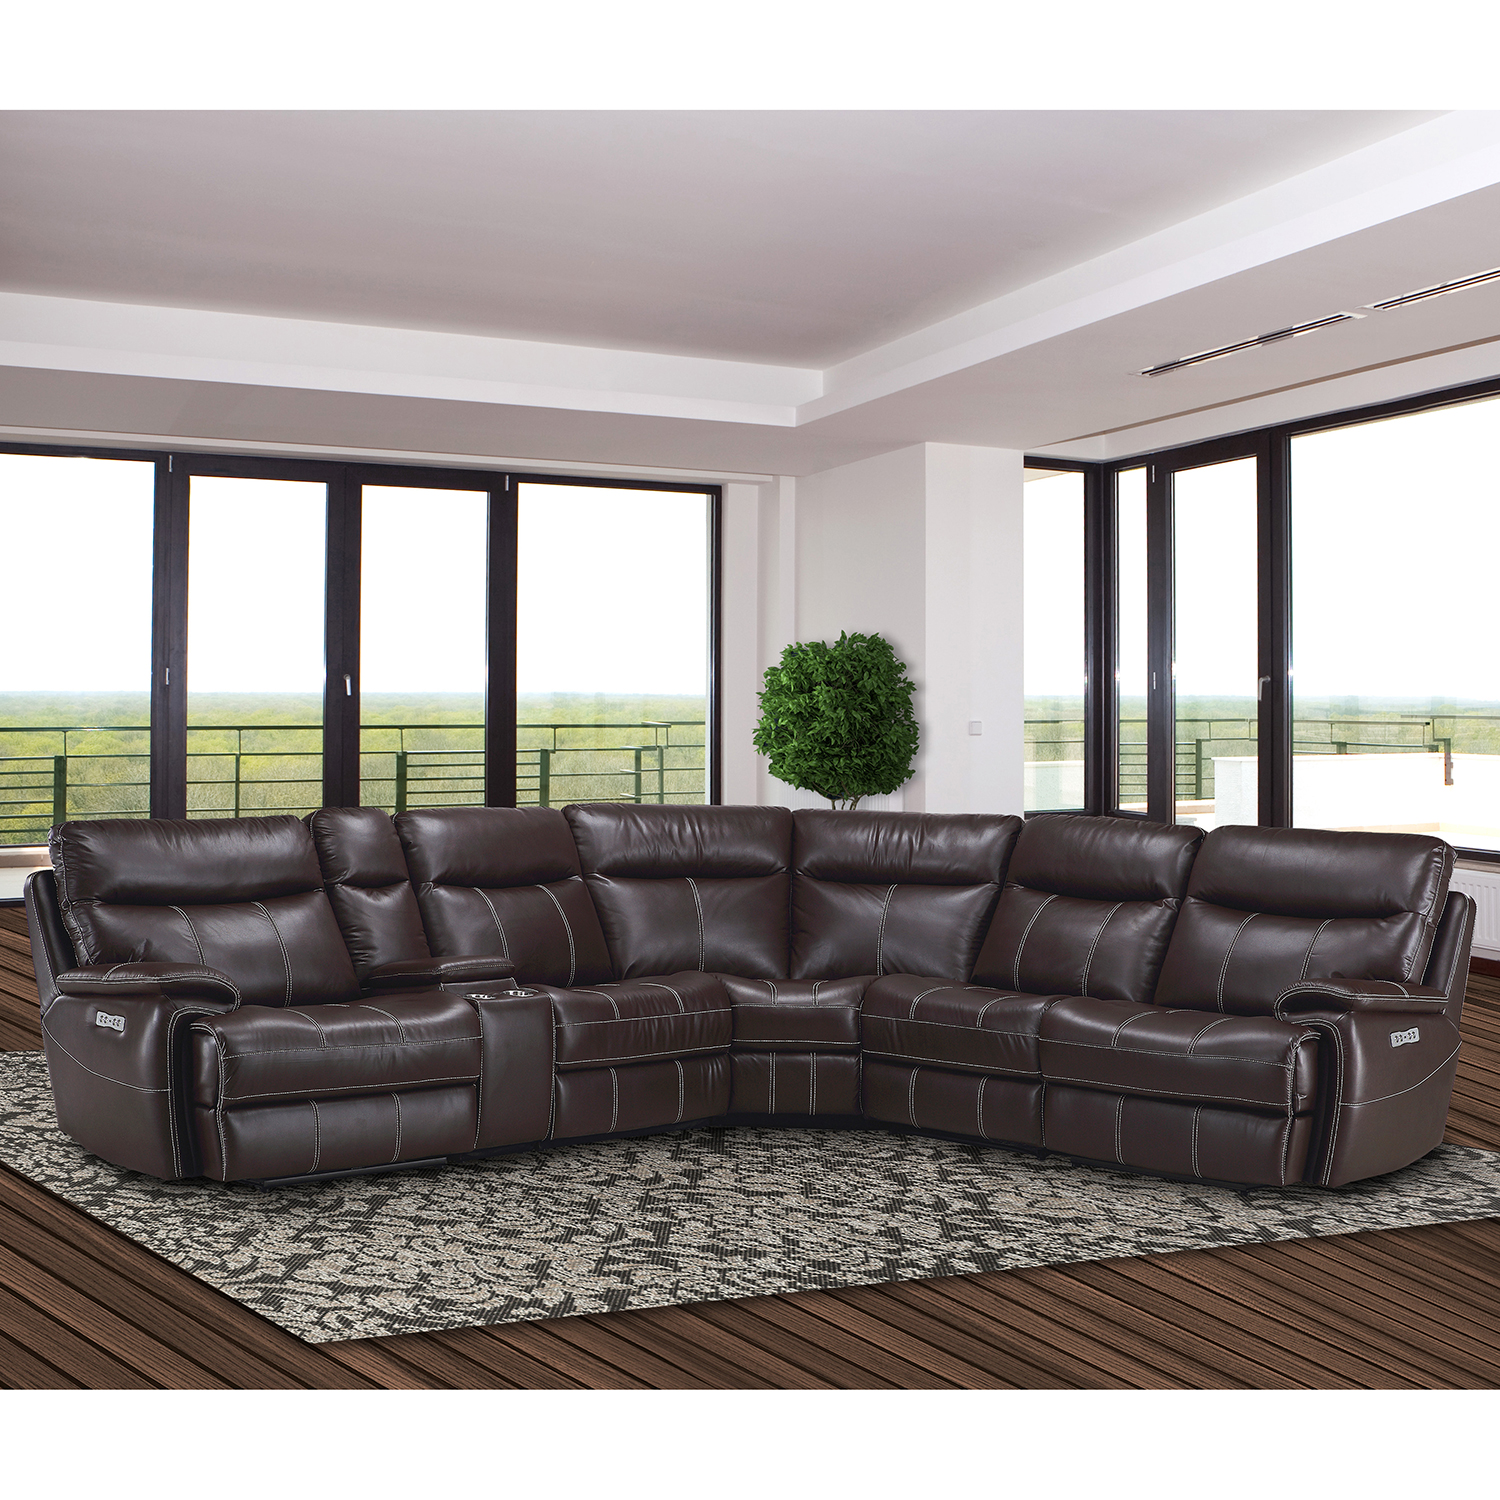 Dylan 6 Piece Sectional Sofa in Mahogany Leatherette by Parker House